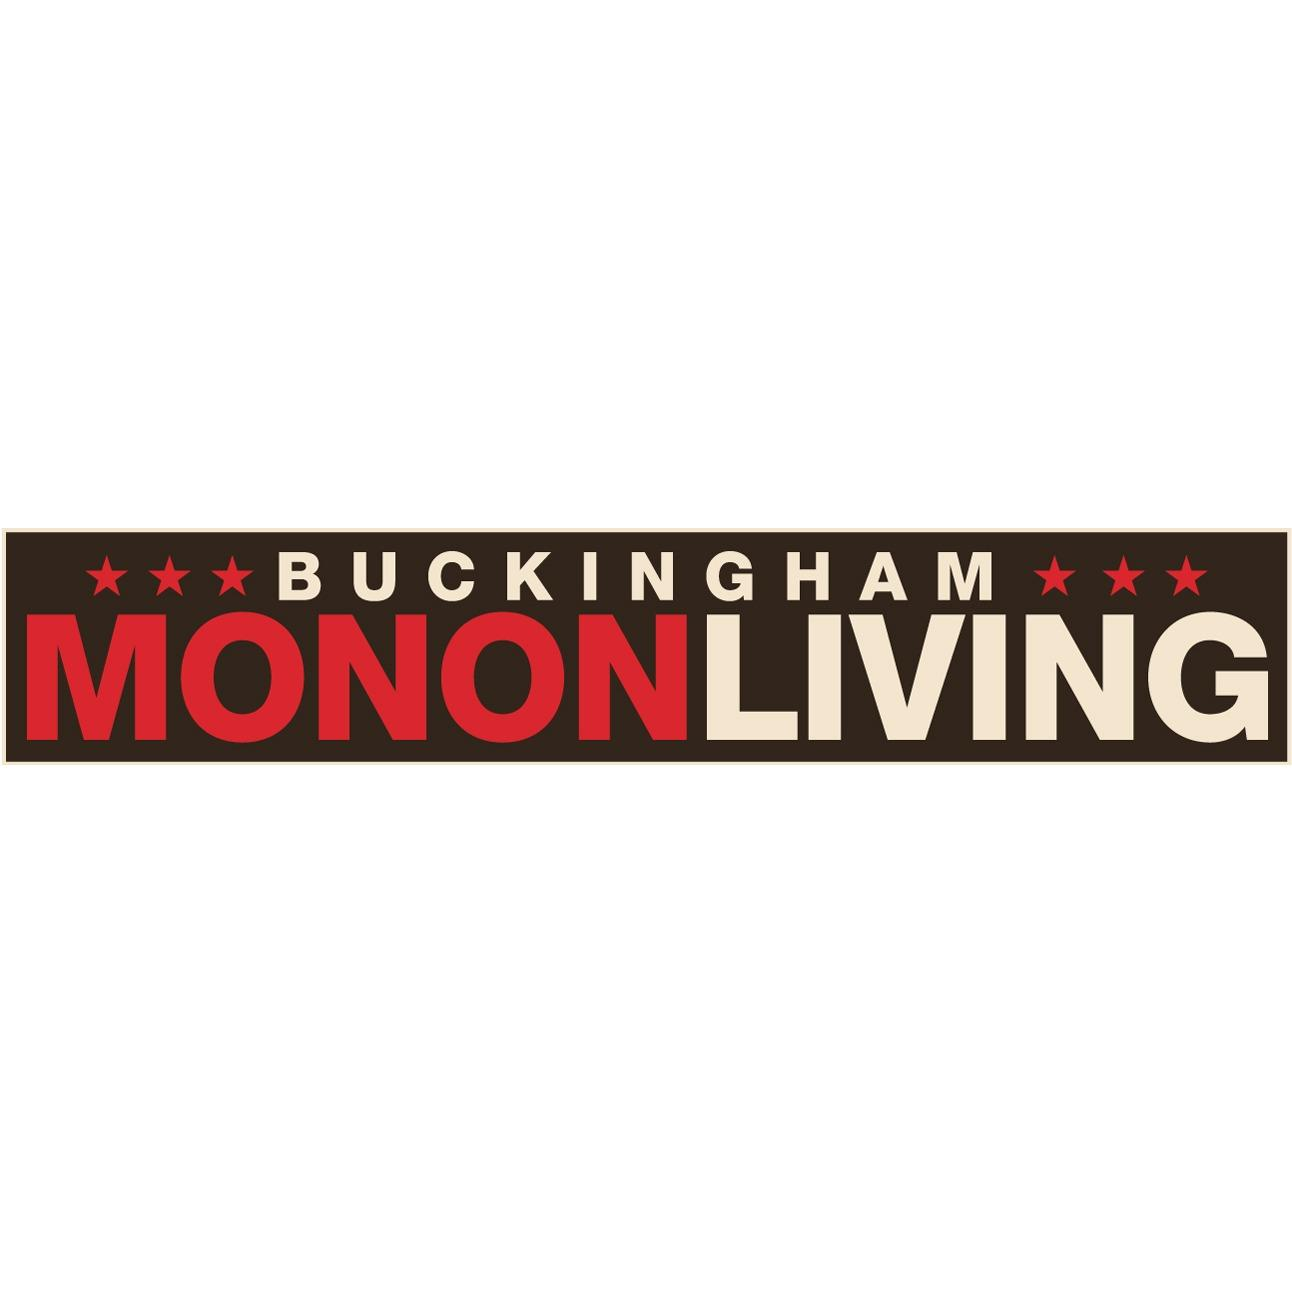 Monon Place, Managed by Buckingham Monon Living